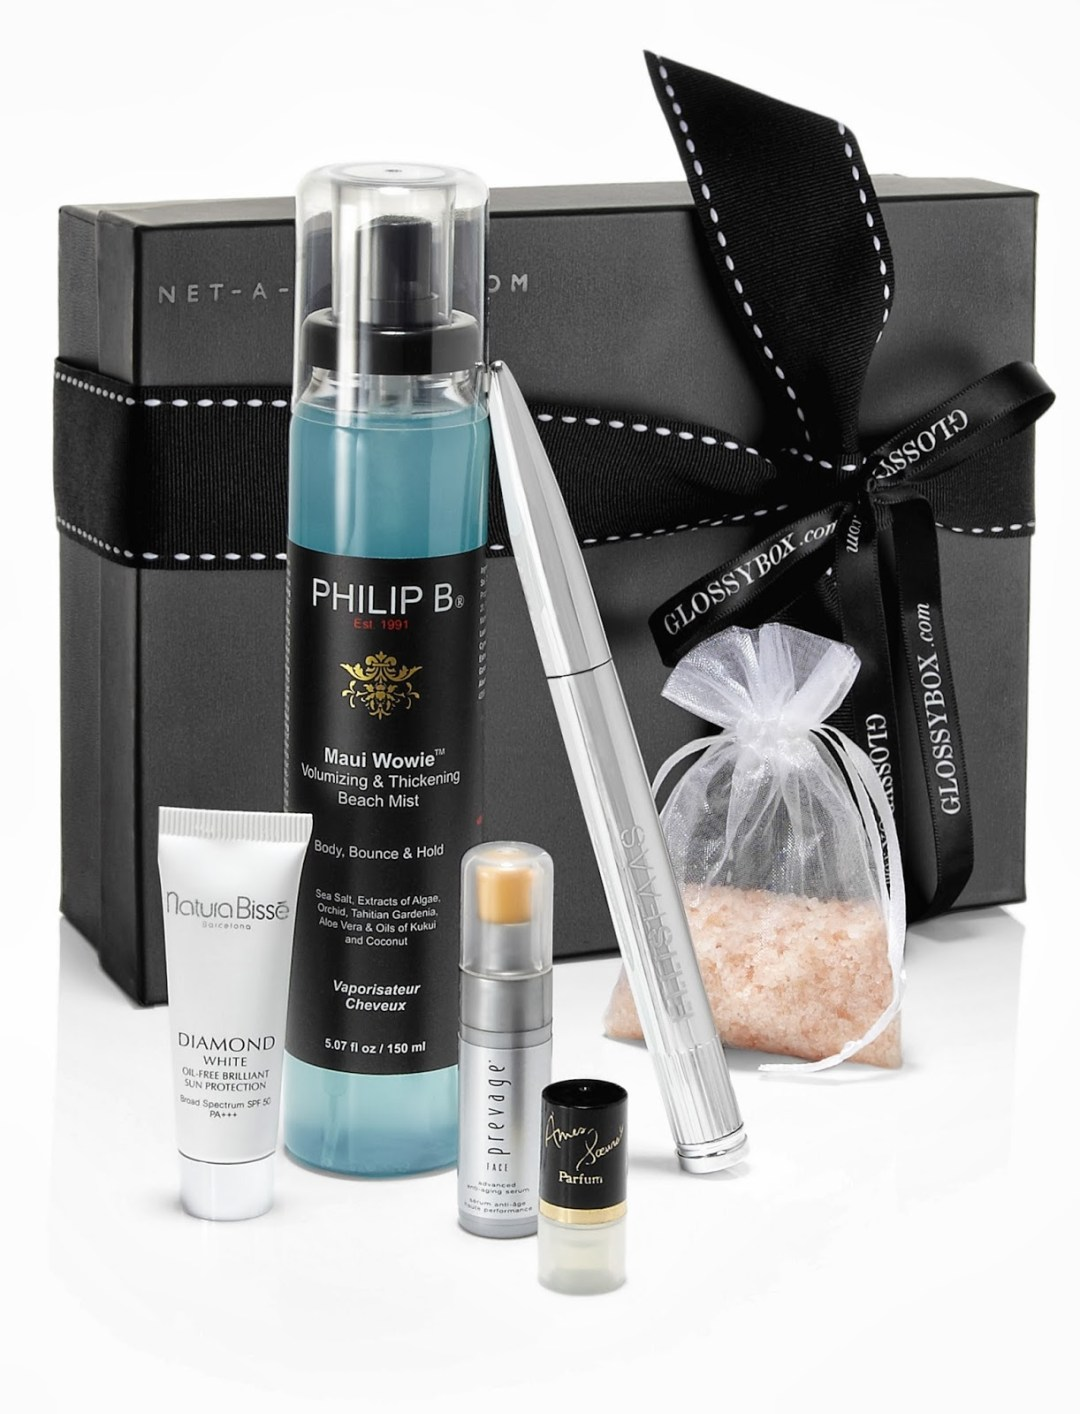 EXCLUSIVE – NET A PORTER x GLOSSYBOX